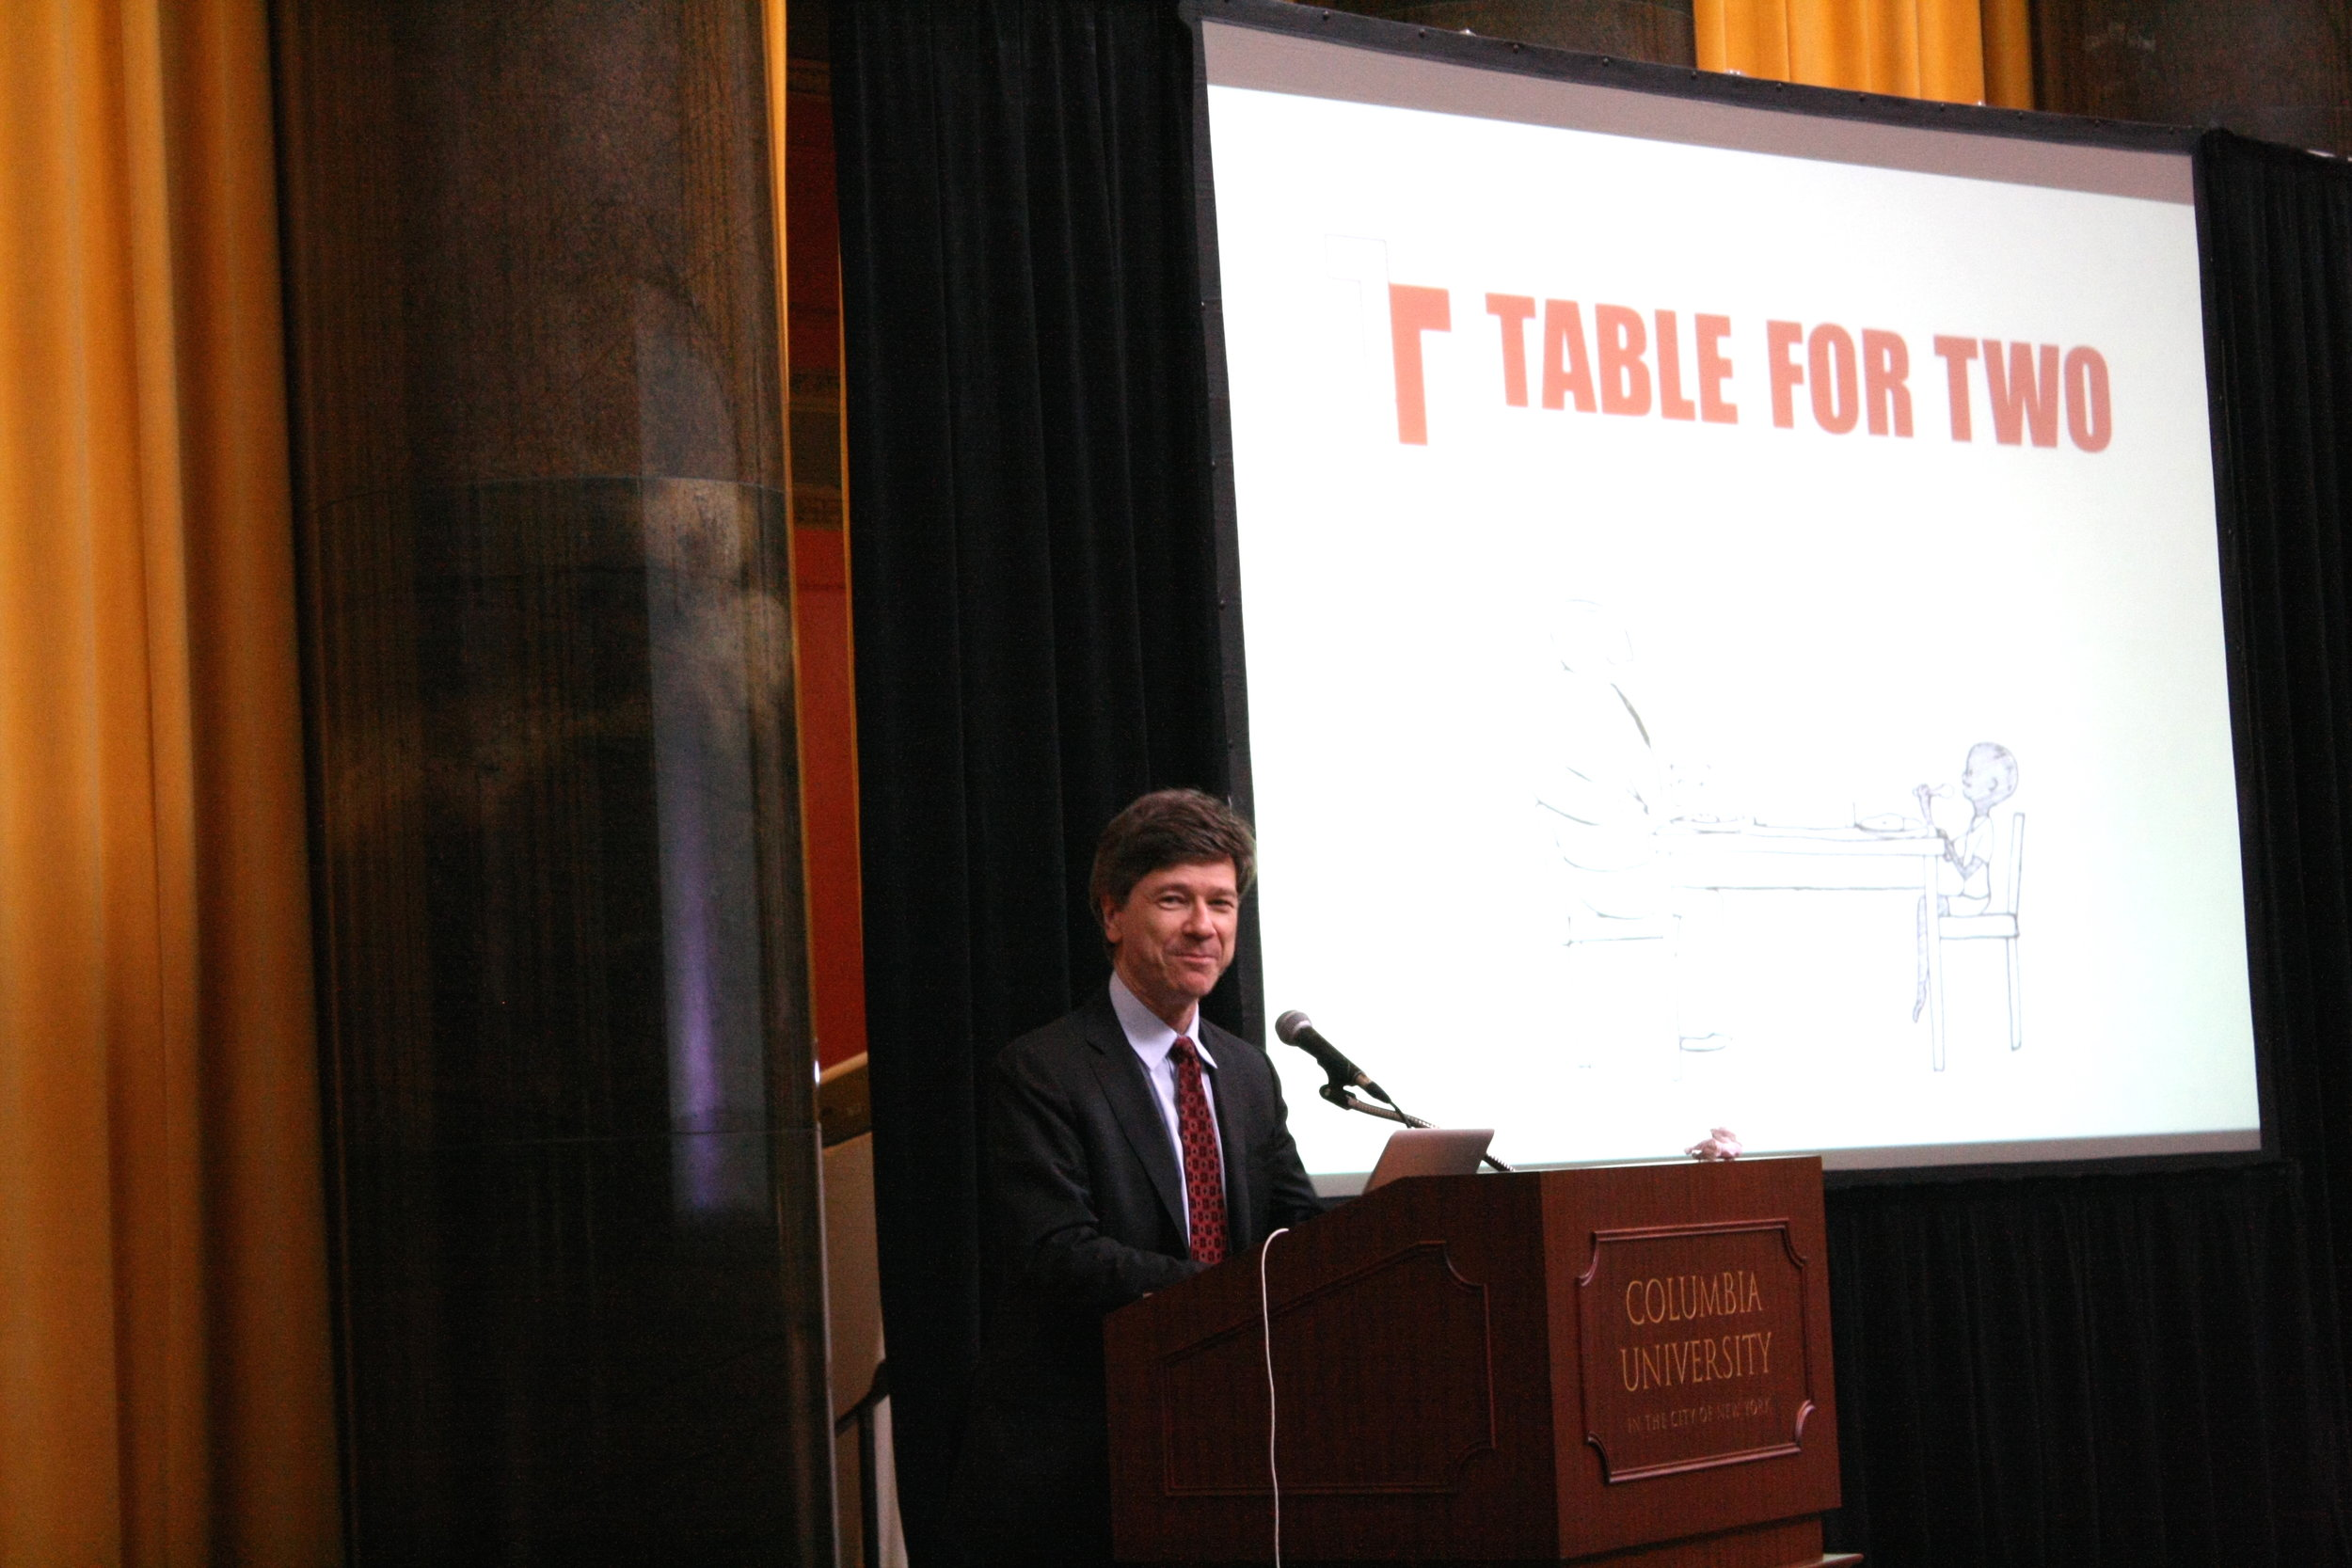 TABLE FOR TWO USA launch event at Columbia University with Prof. Jeffrey Sachs